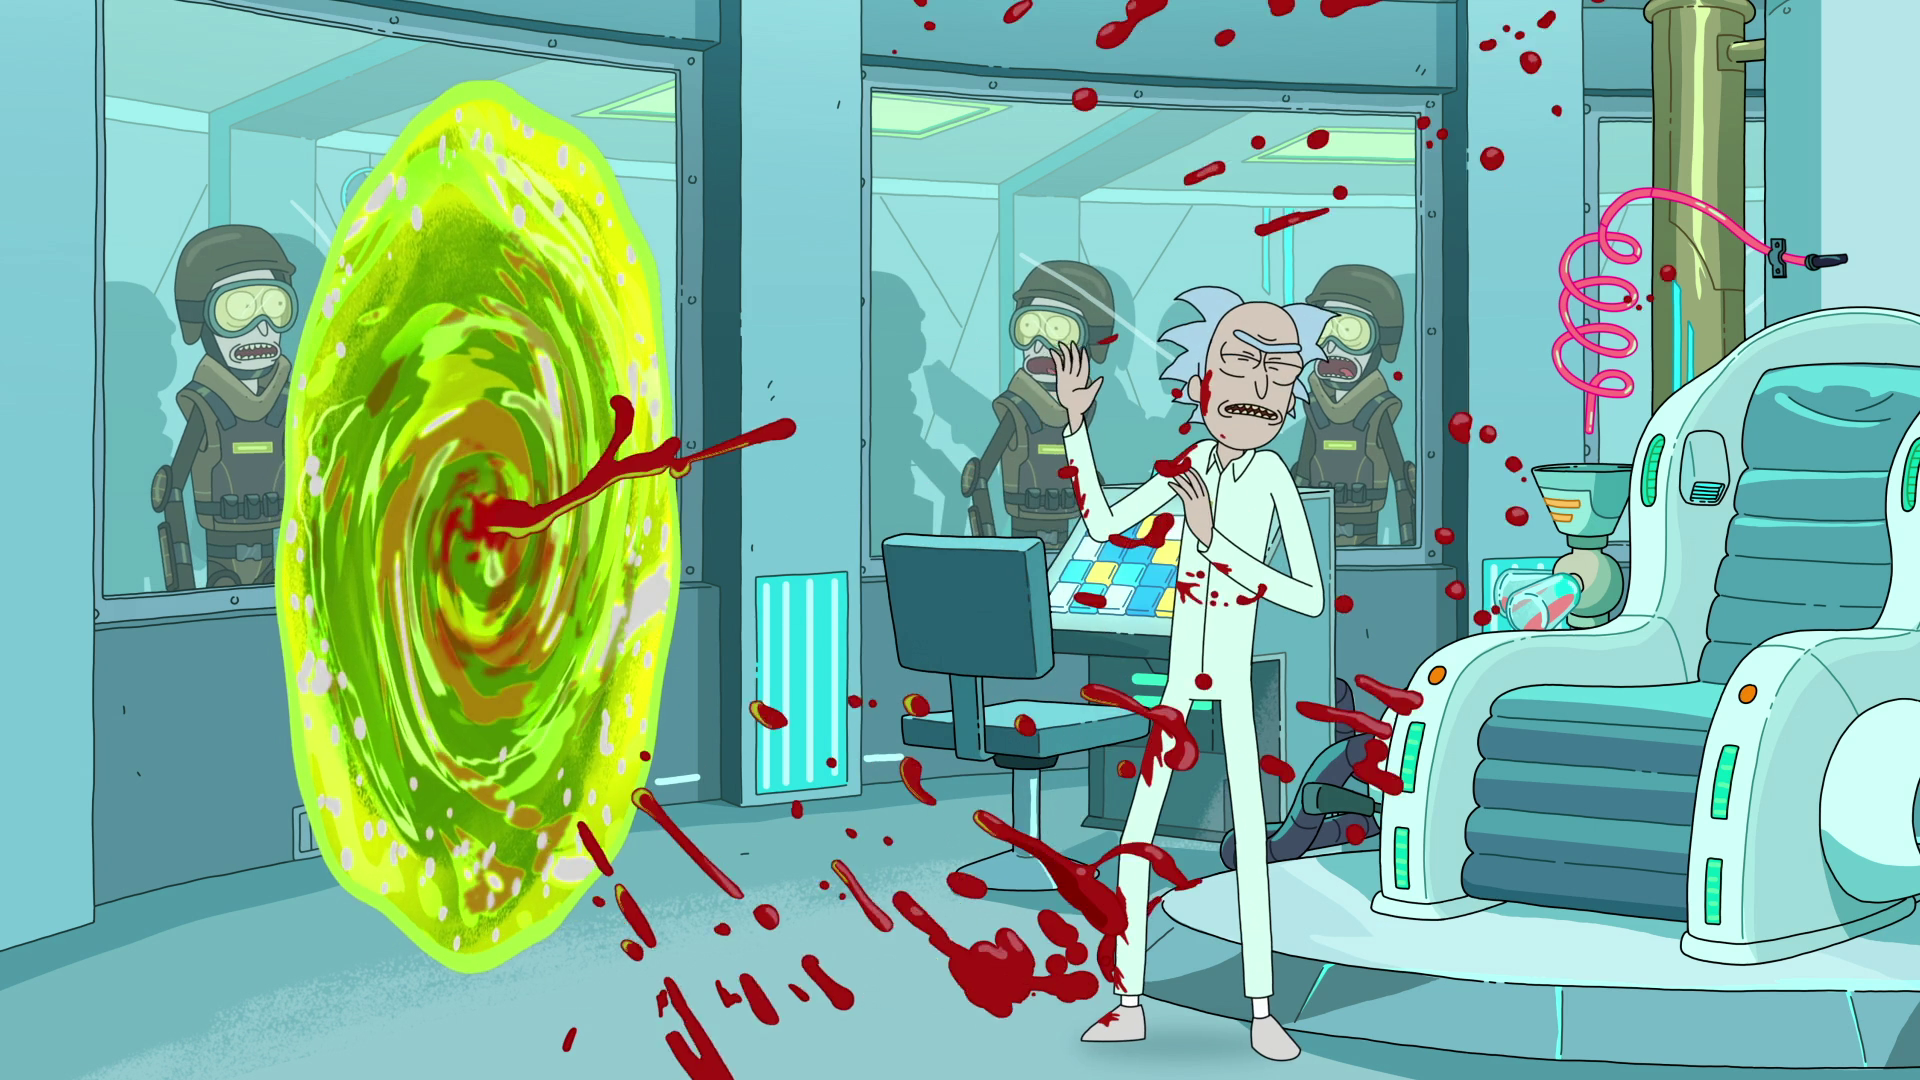 Blender Dimension | Rick and Morty Wiki | FANDOM powered by